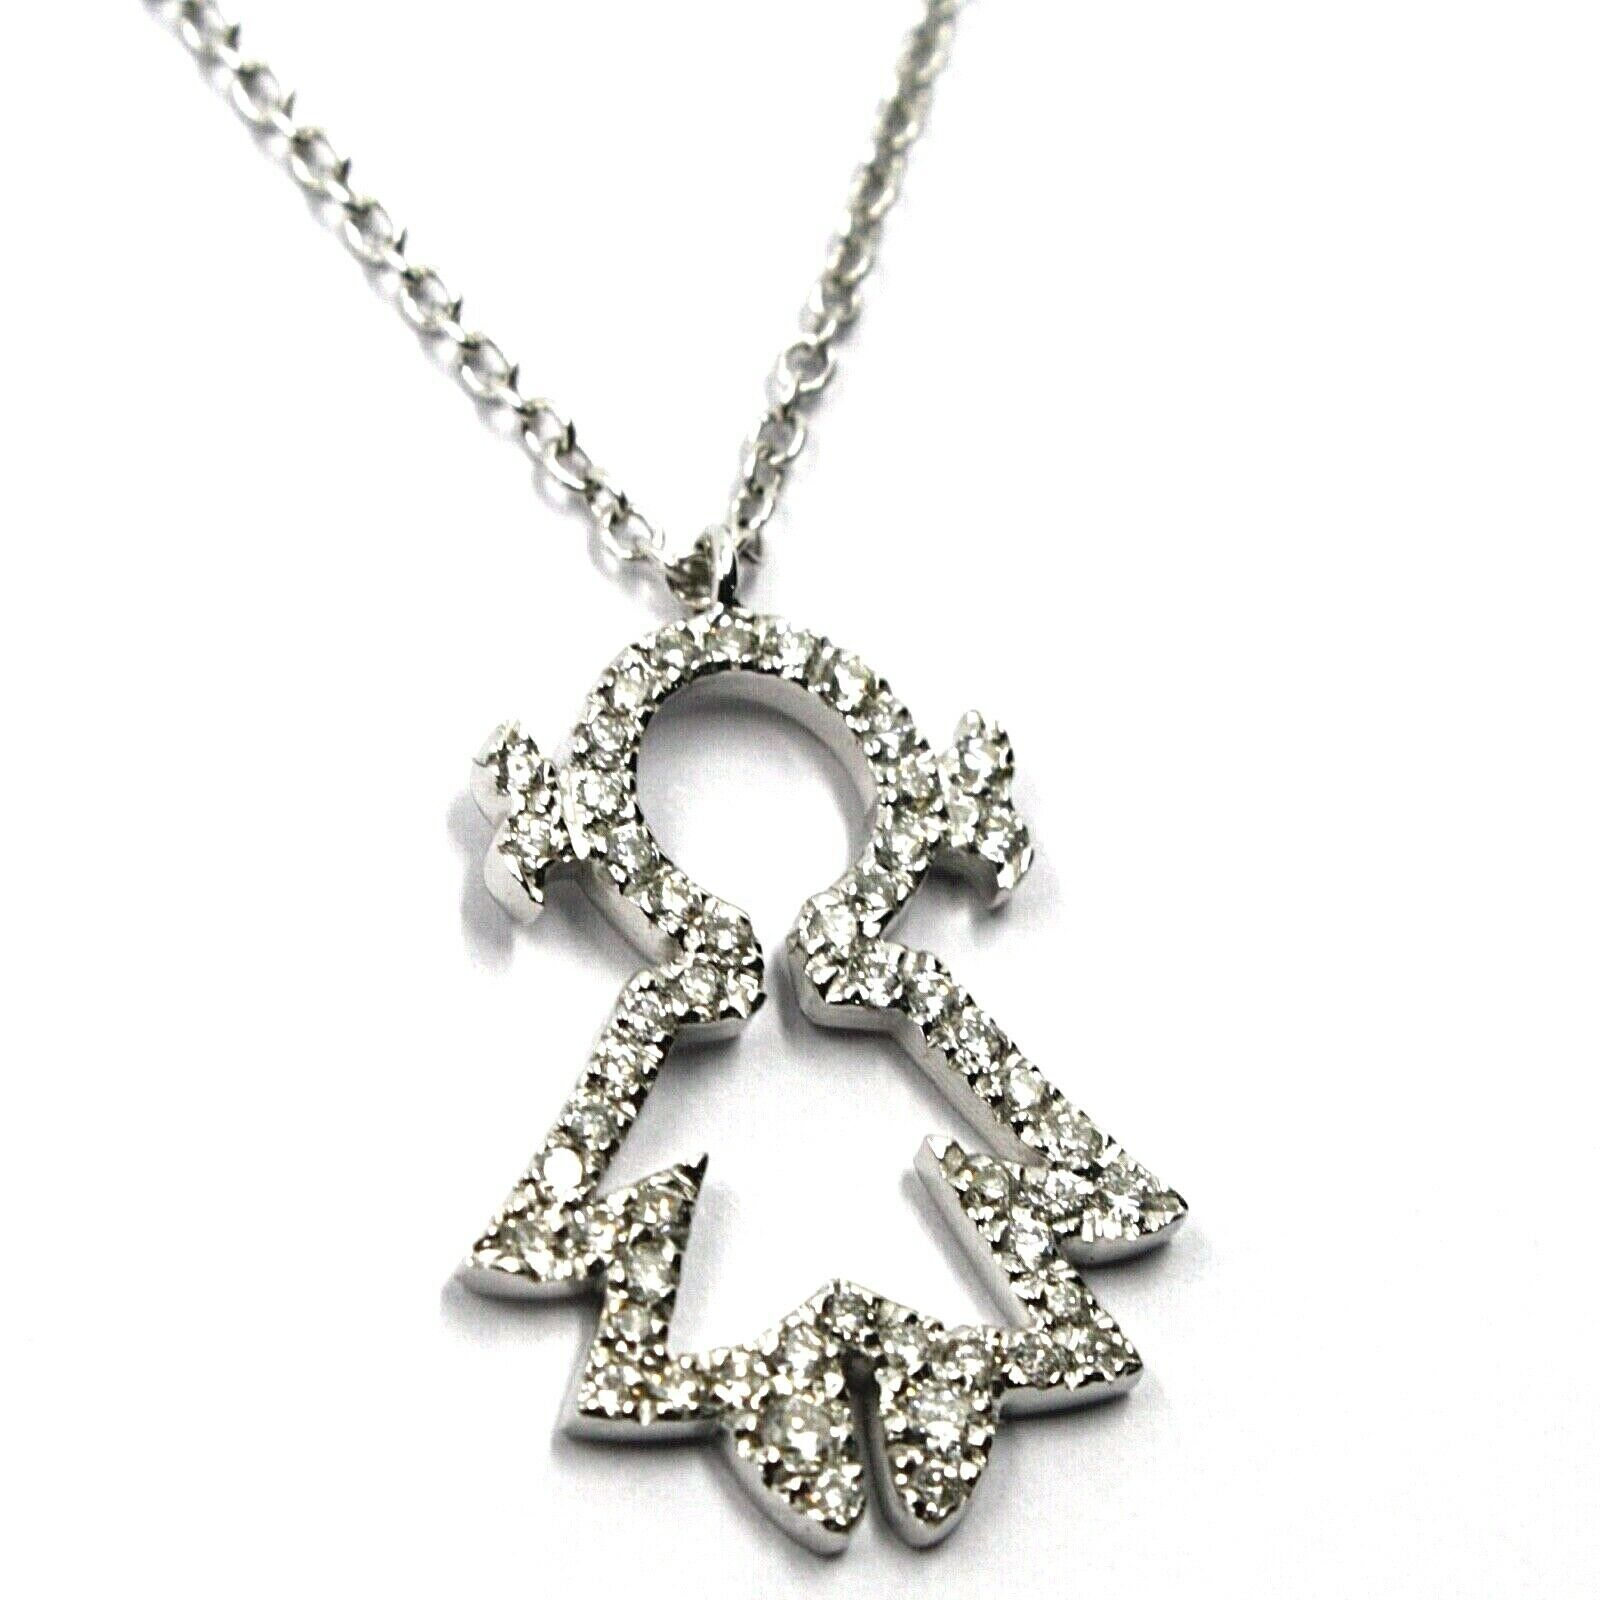 18K WHITE GOLD NECKLACE, BABY, CHILD, GIRL, DAUGHTER PENDANT DIAMONDS ROLO CHAIN